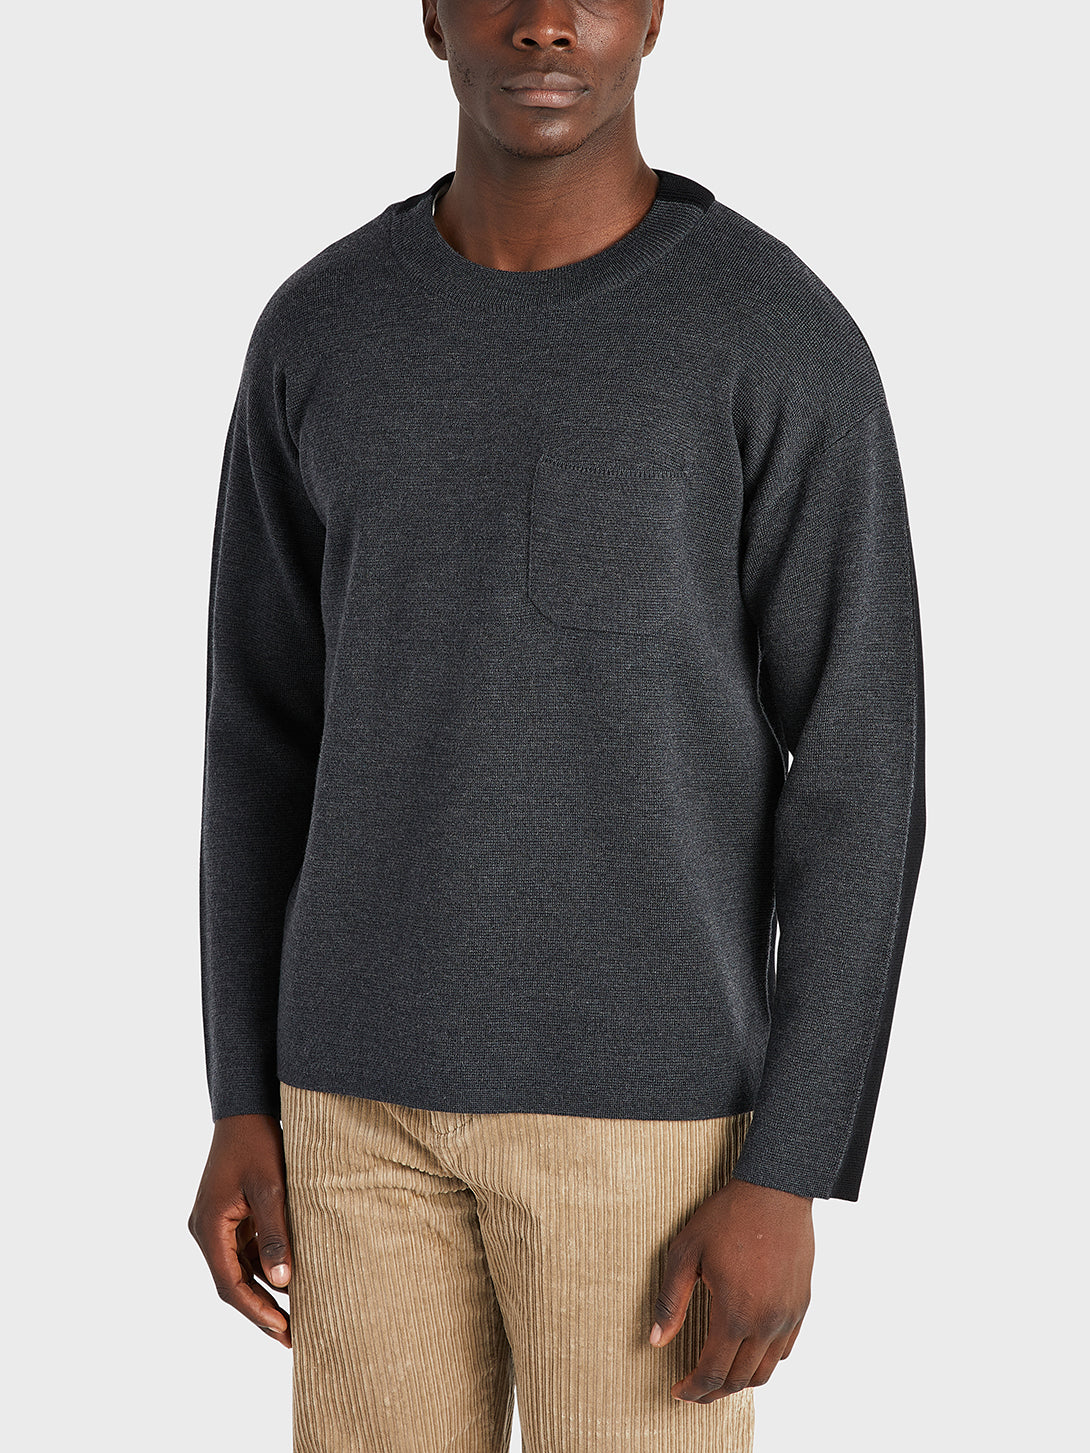 black friday deals ONS Clothing Men's sweater in CHARCOAL